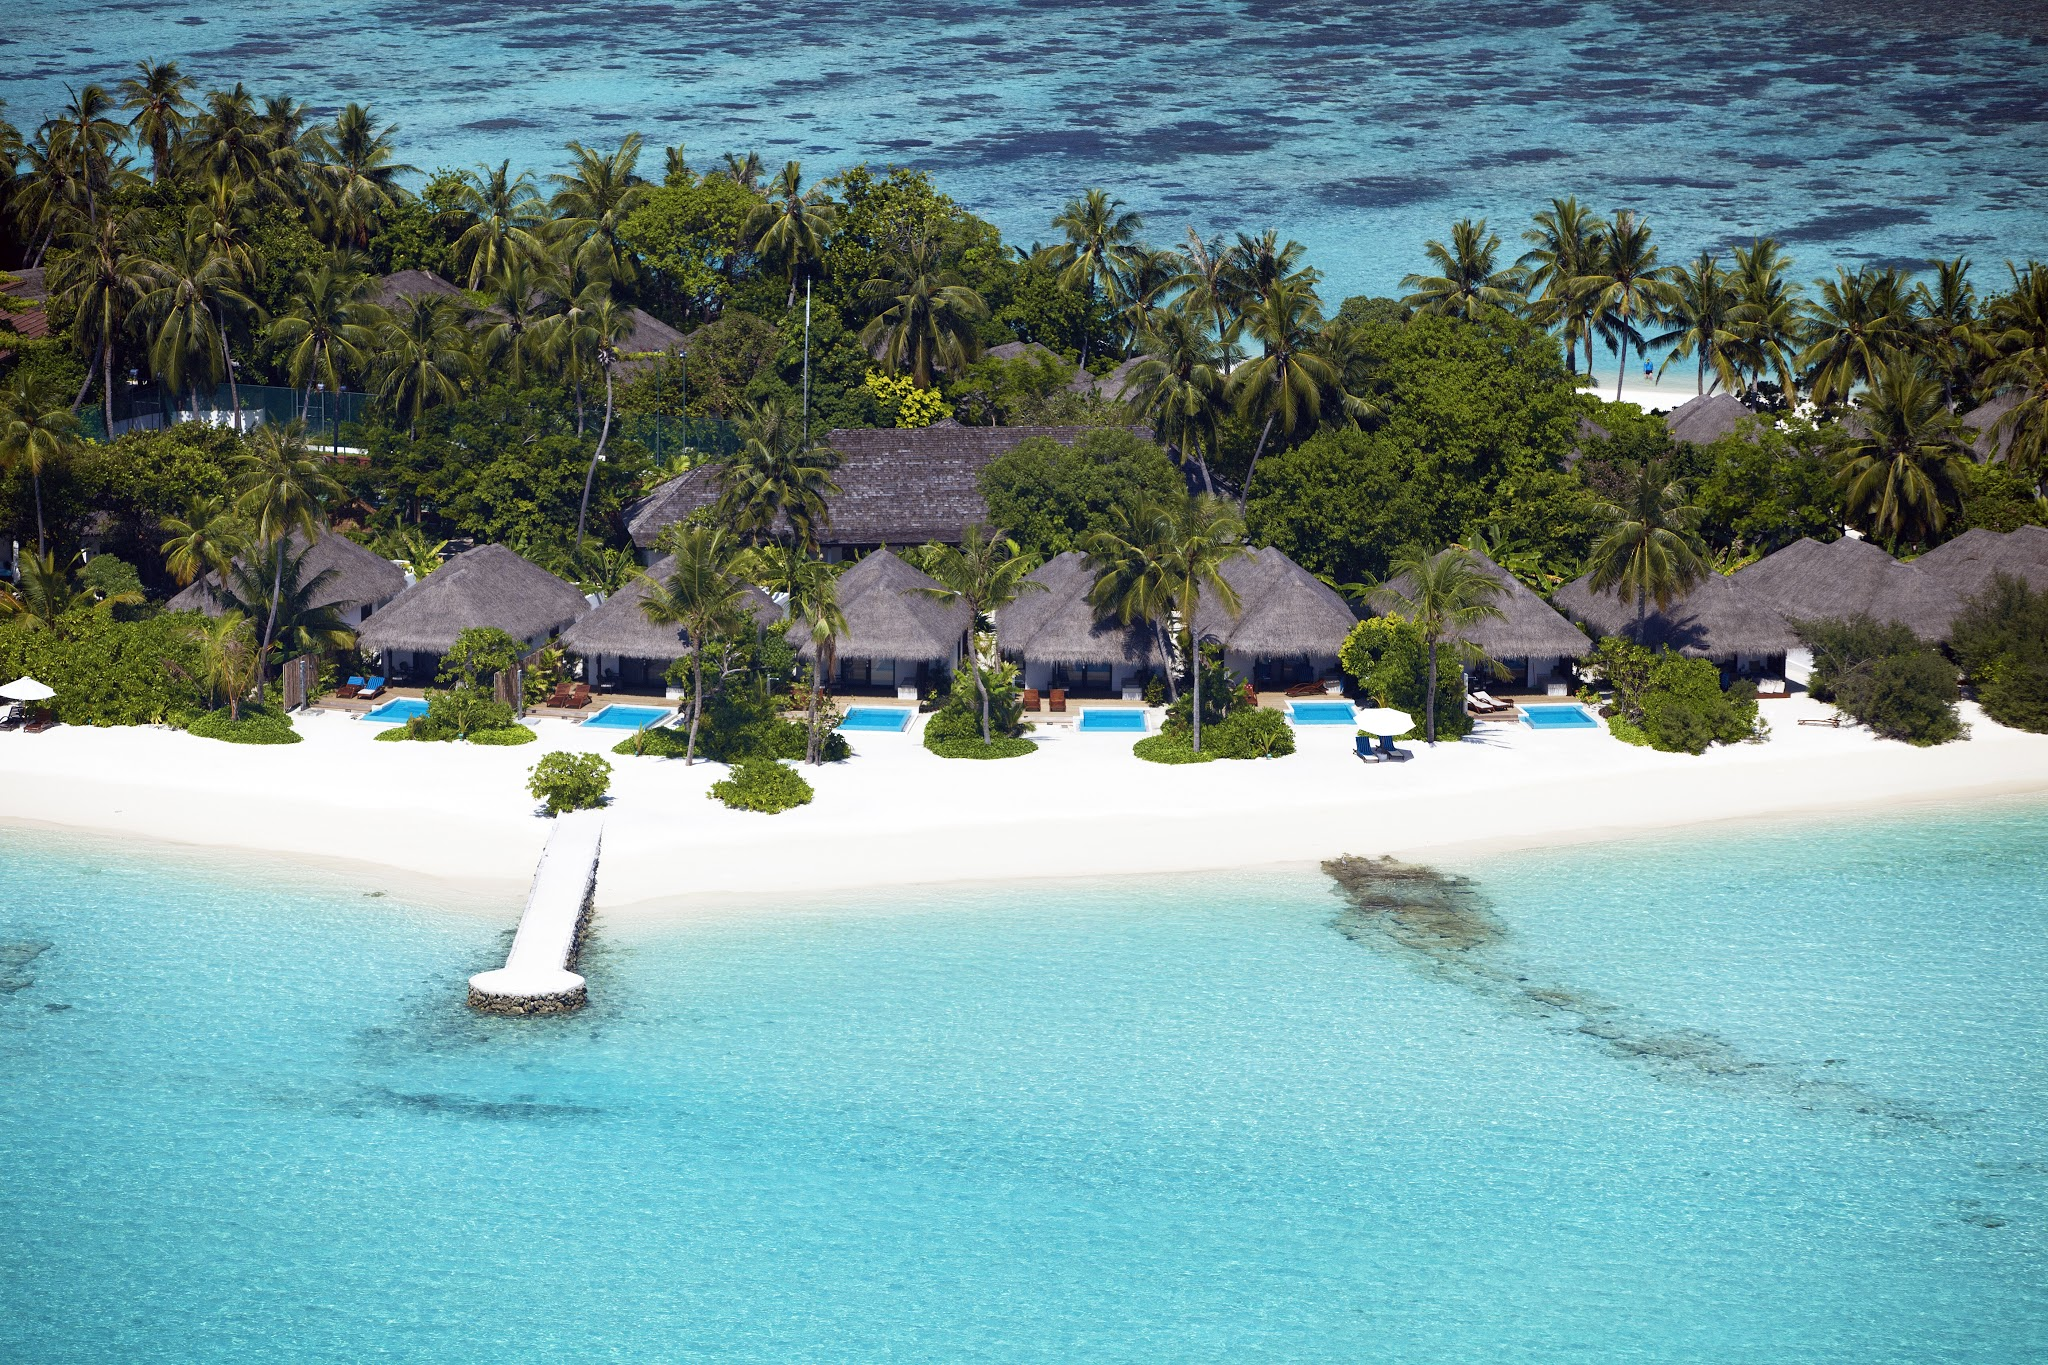 Places To Visit In Velassaru Maldives Expecially For - Ermi beach resort map